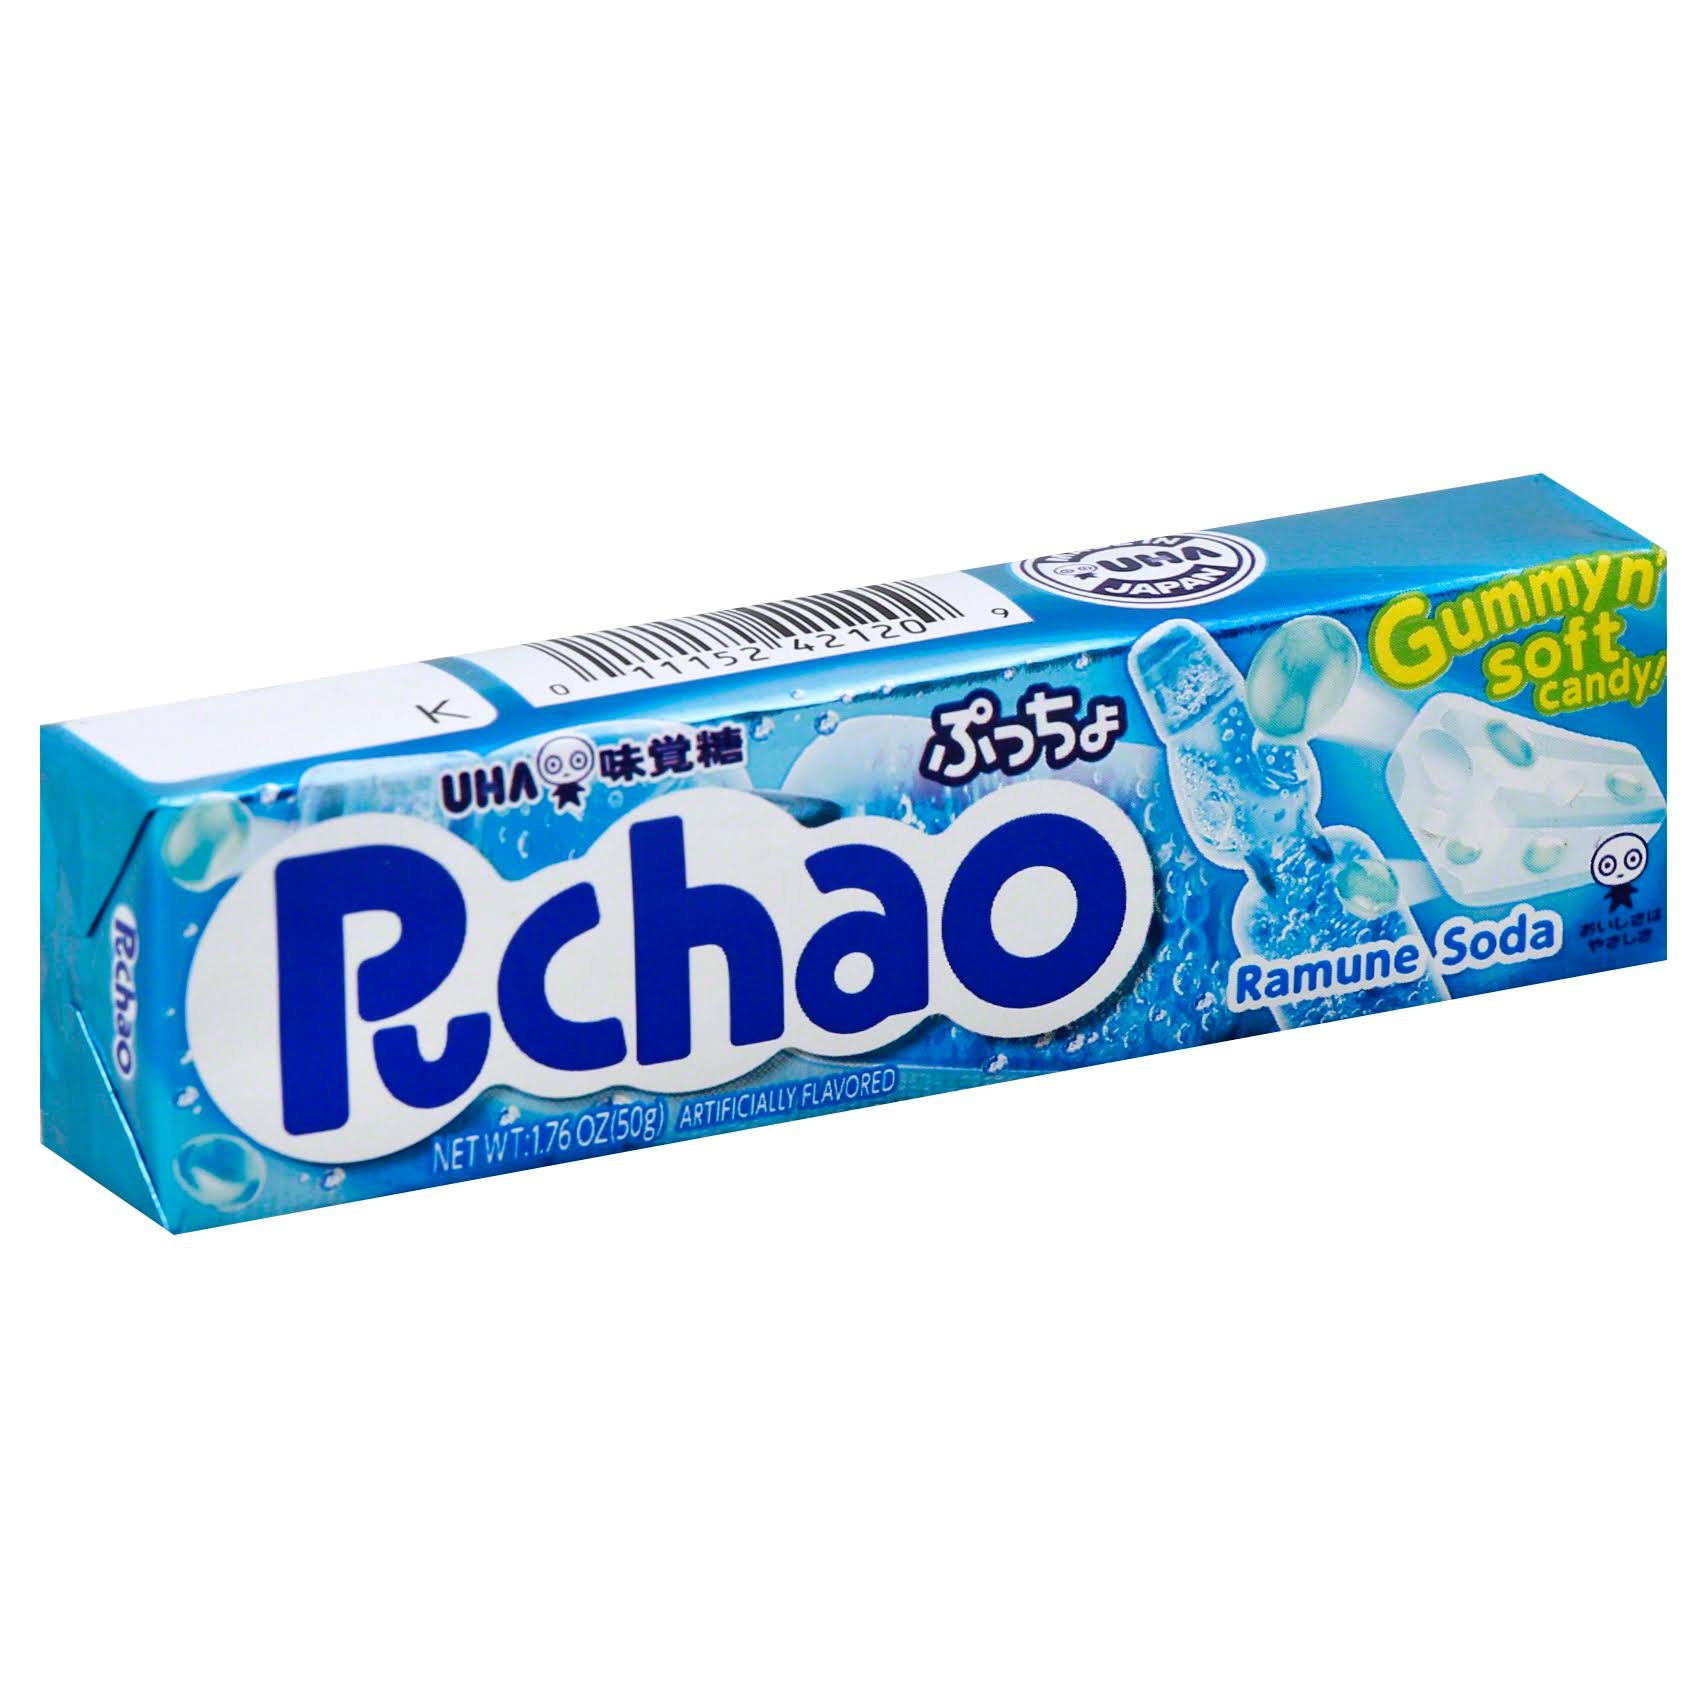 Puchao Ramune Soda Gummy Candy - 1.76oz